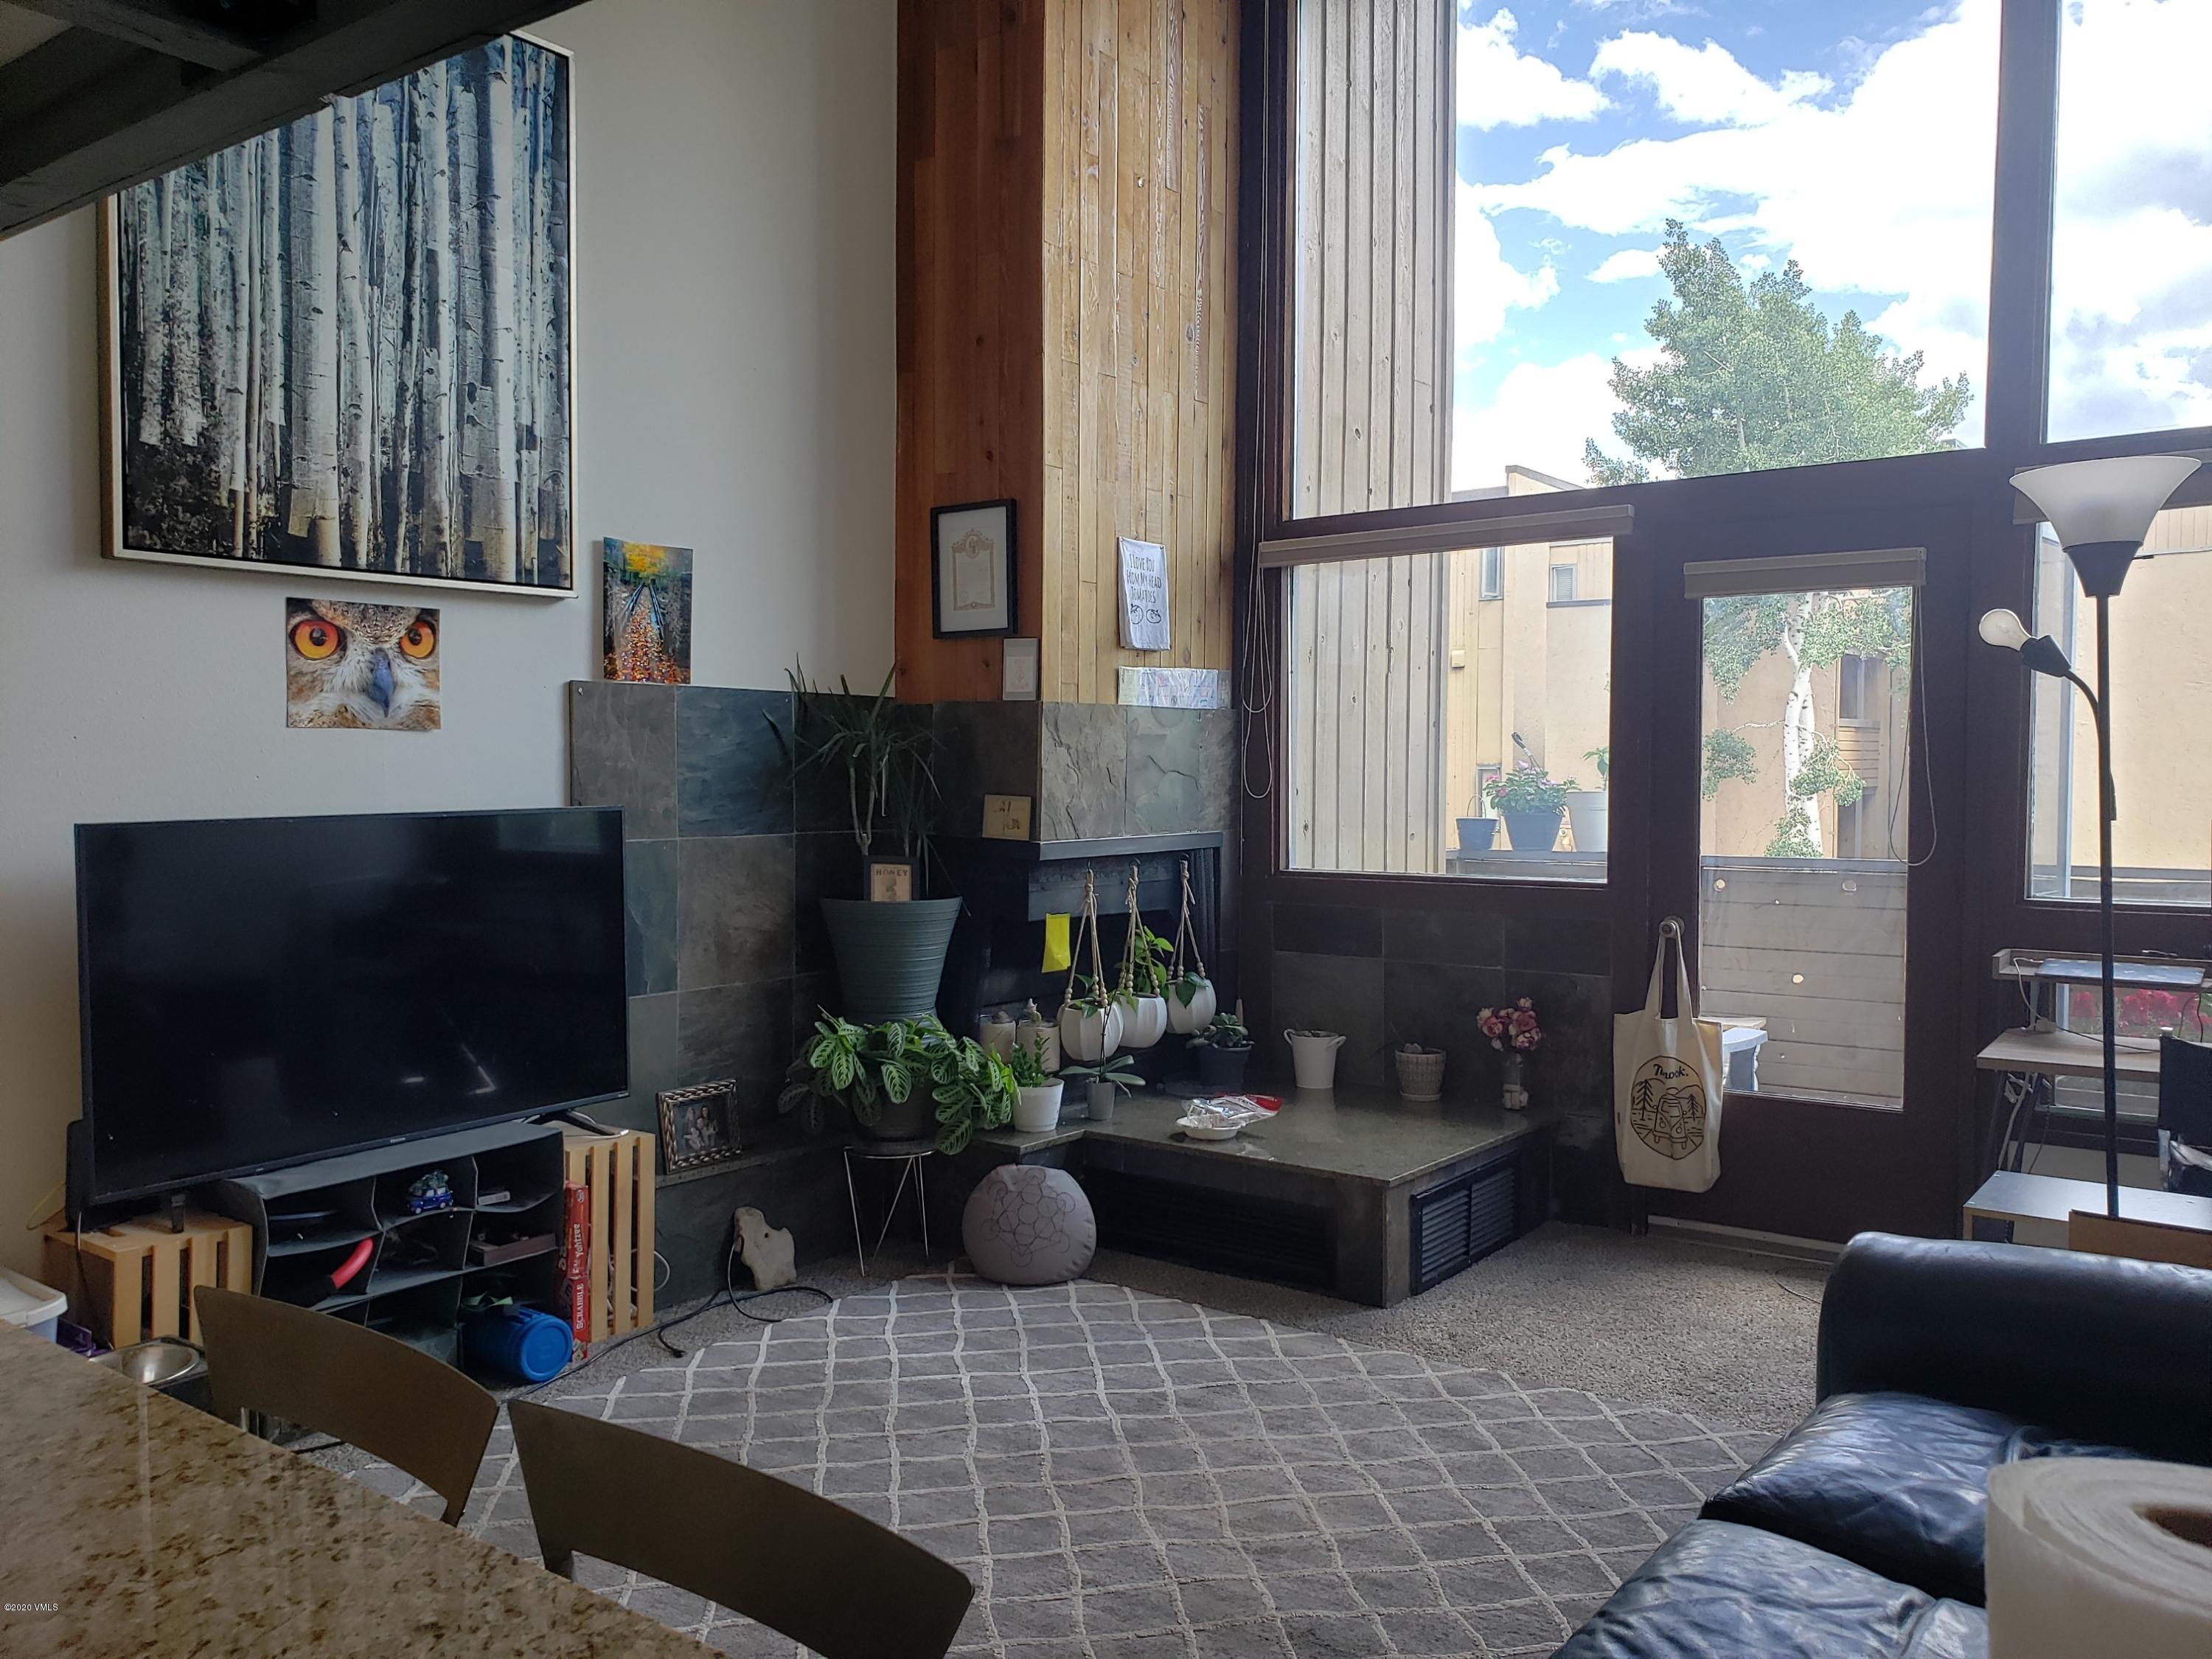 Sunny south-facing unit on the TOV bus with views toward Vail Mountain. Great opportunity for first-time home buyer, weekender or investment. Partially furnished with new carpet & paint. HOA dues include HEAT!